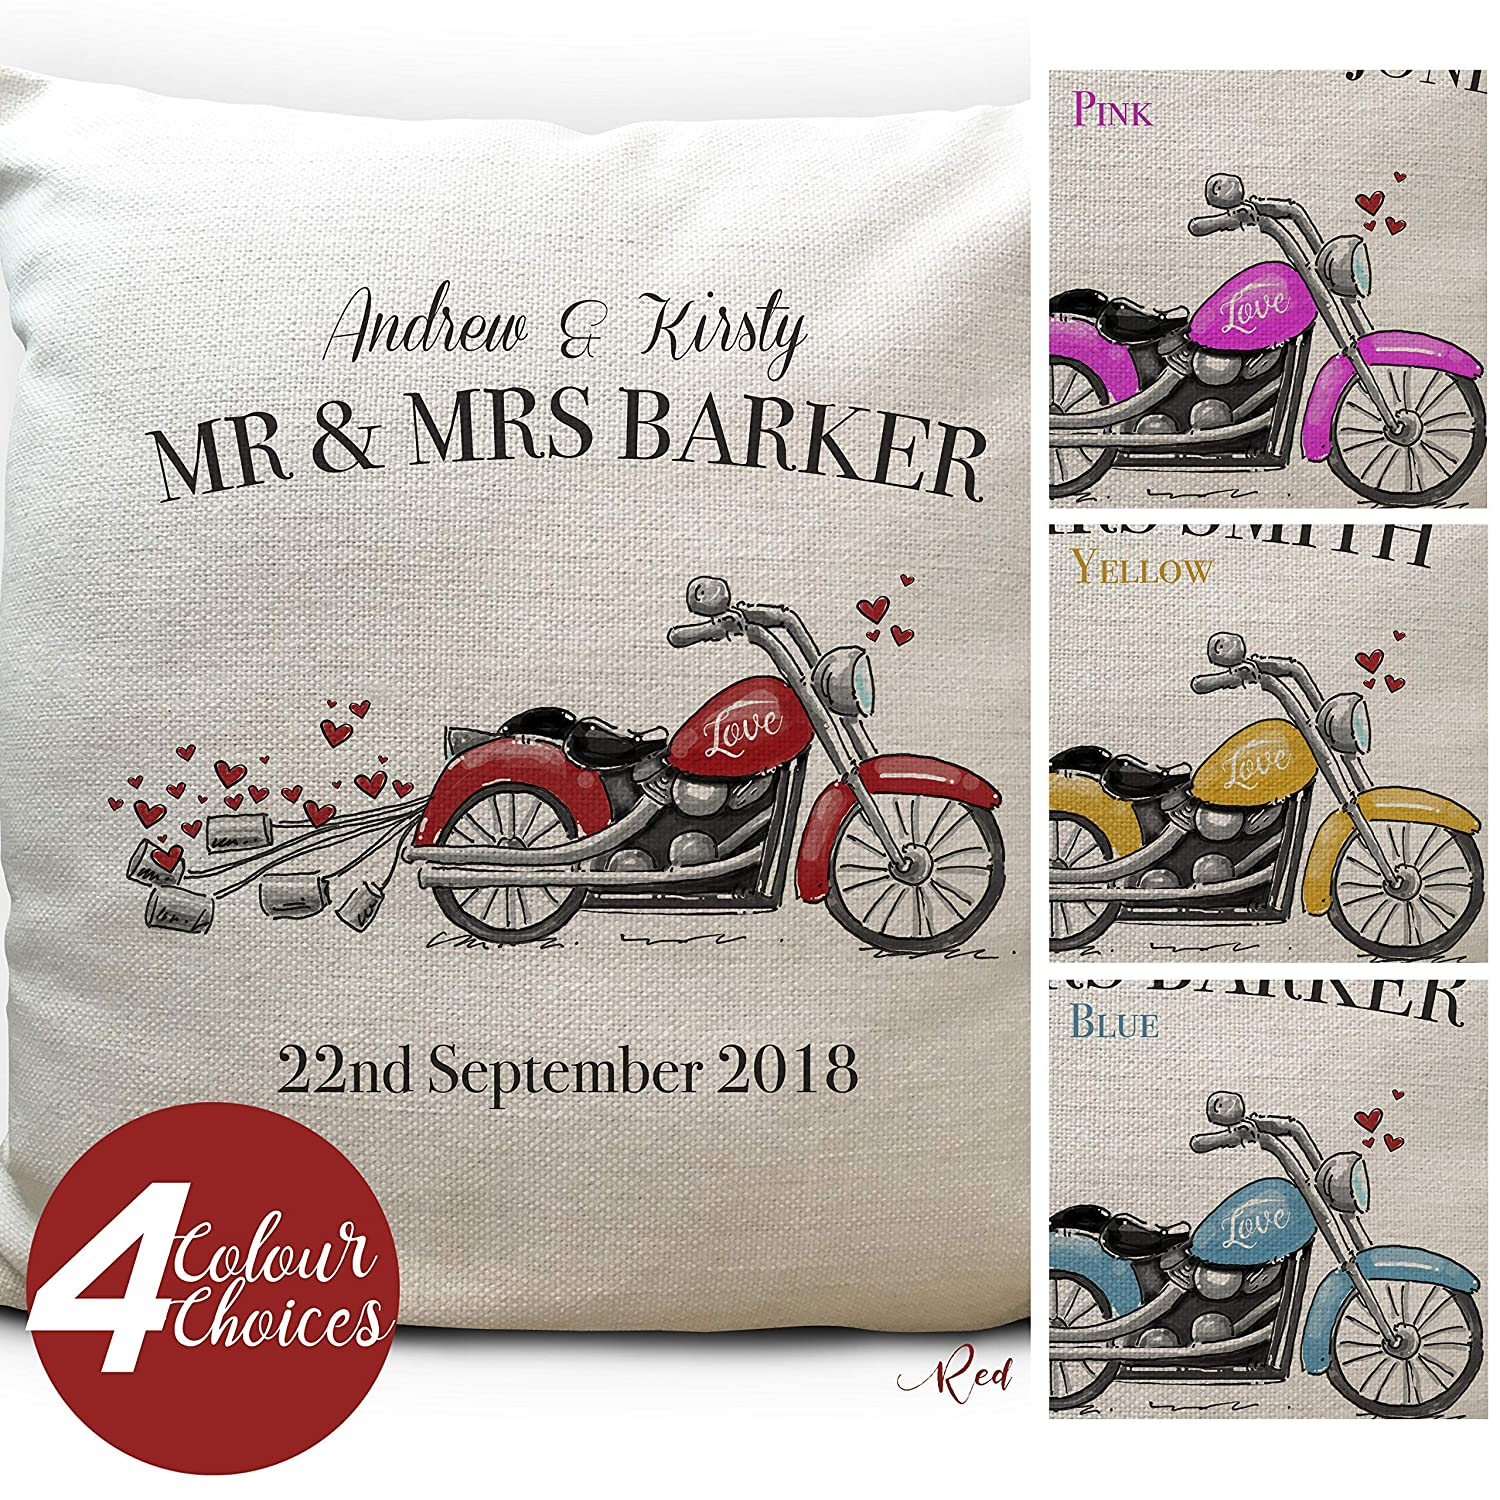 Personalised Motorbike Wedding Cushion Pillow Cover - Mr and Mrs Anniversary Gift - Colour Choices - 16 inch High Quality